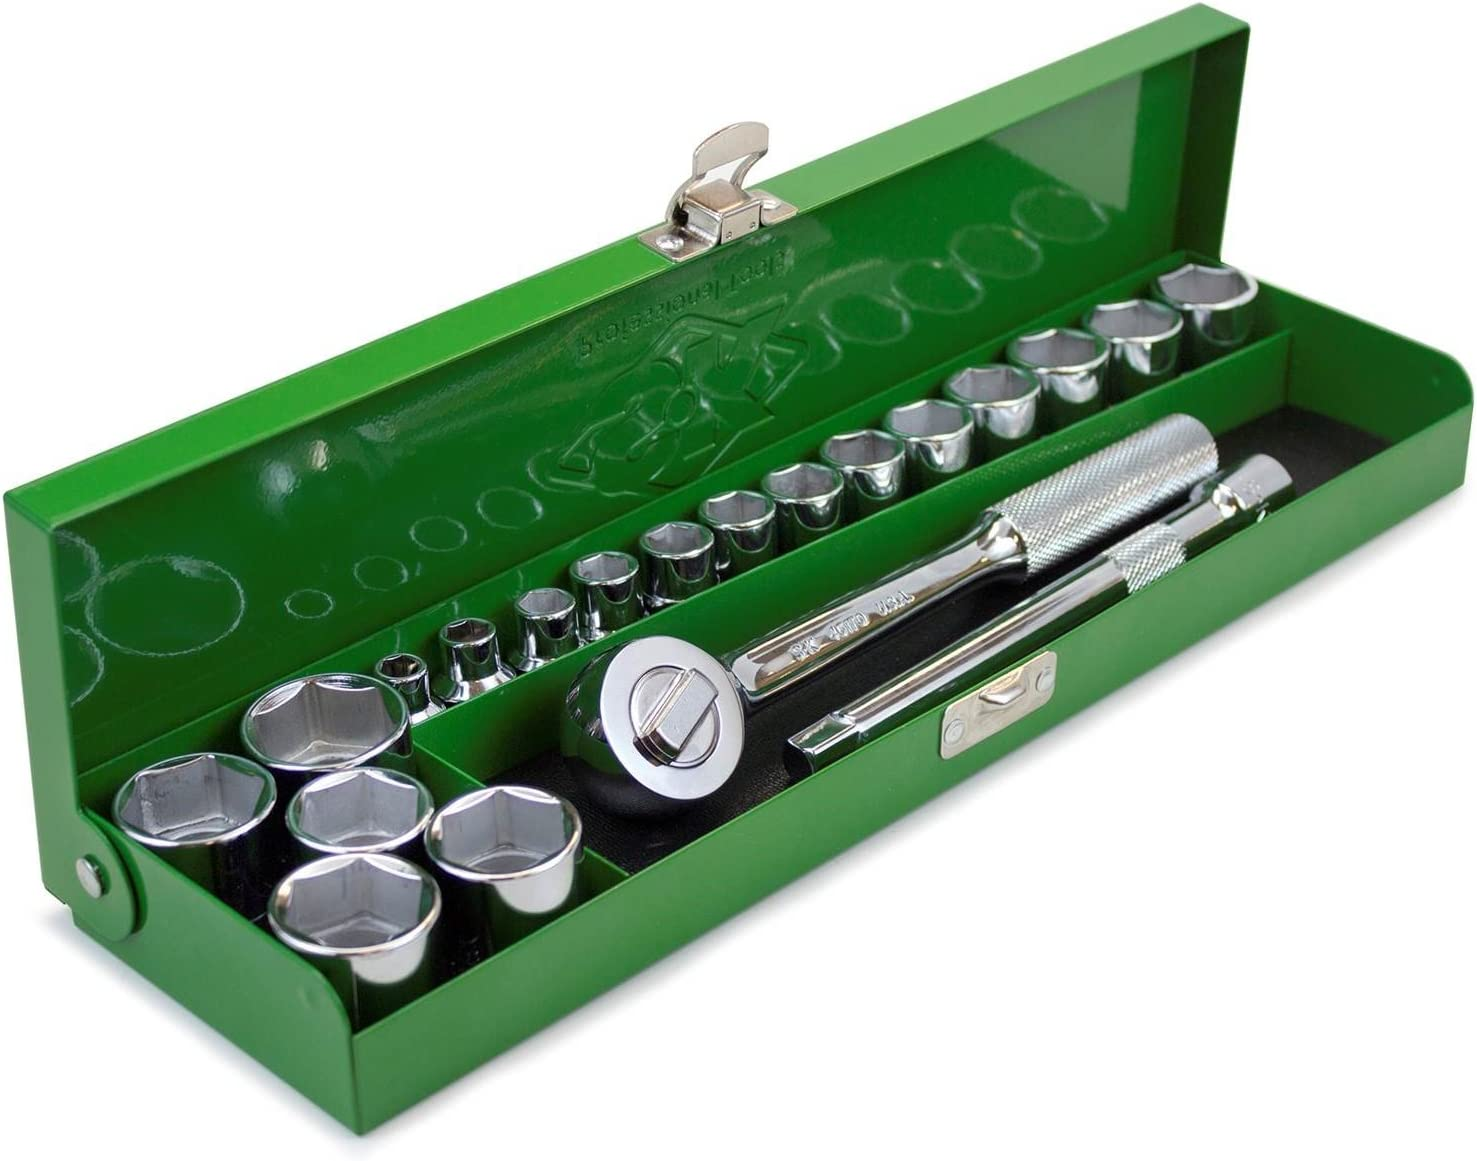 Wrench Racks and Tools Fractional SK Handtools Wrenches SuperKrome Finished Set of 15 Wrench Tools for Tightening Loosening Applications SK Hand Tools 86255 Fractional Combination Wrench Set